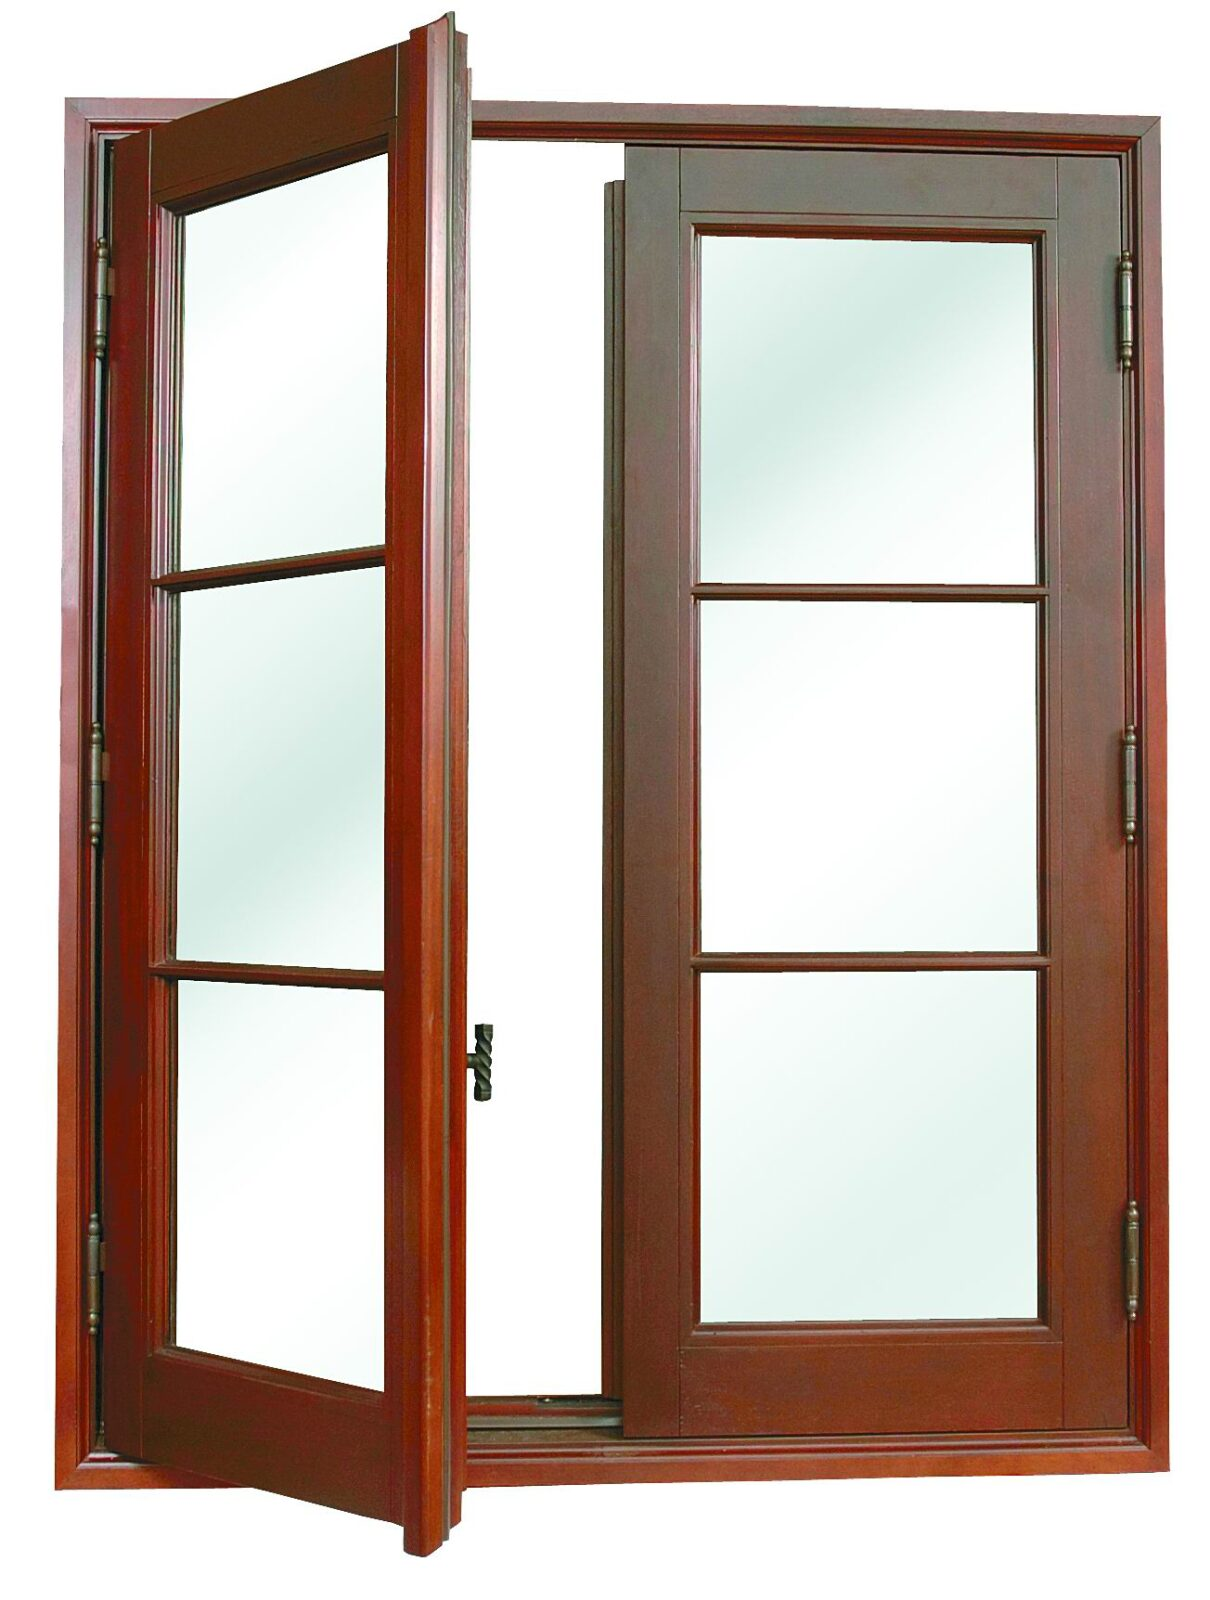 SAN PEDRO MAHOGANY CASEMENT WINDOWS